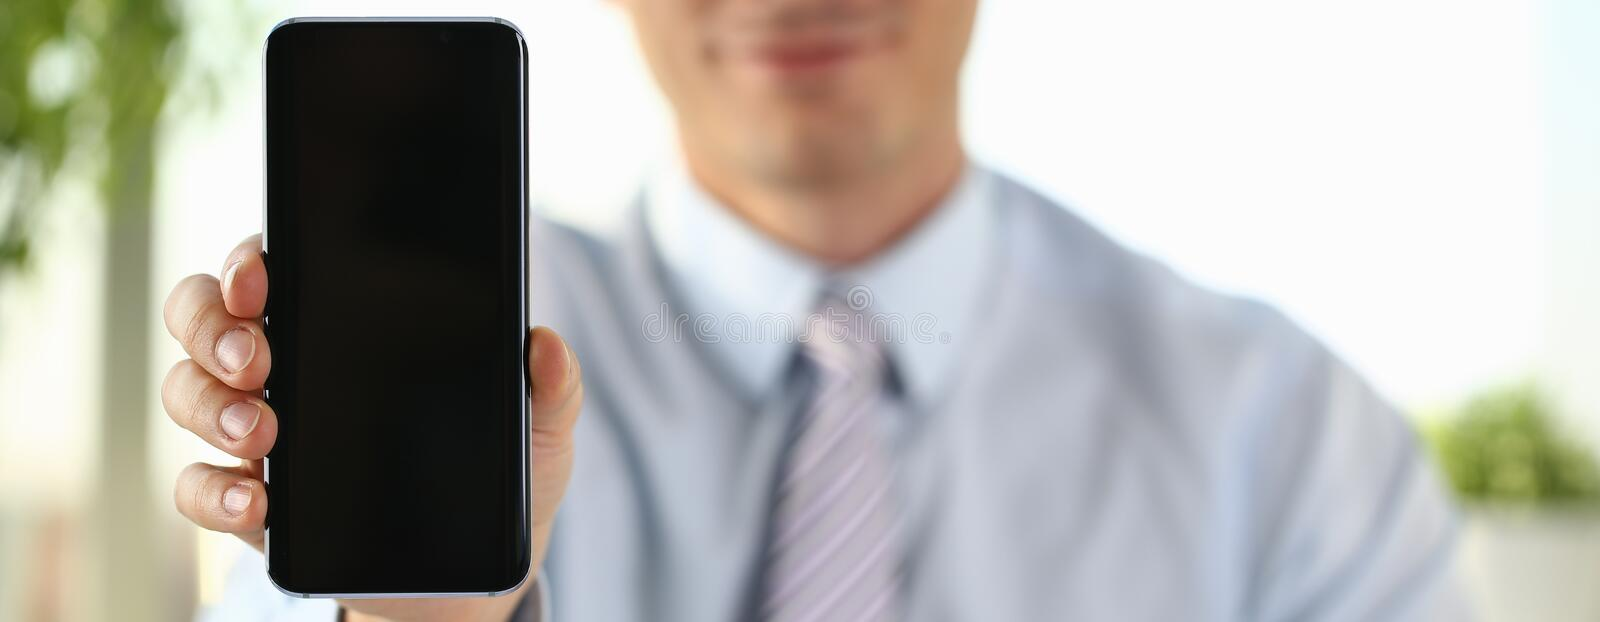 A businessman holds a new smartphone stock image